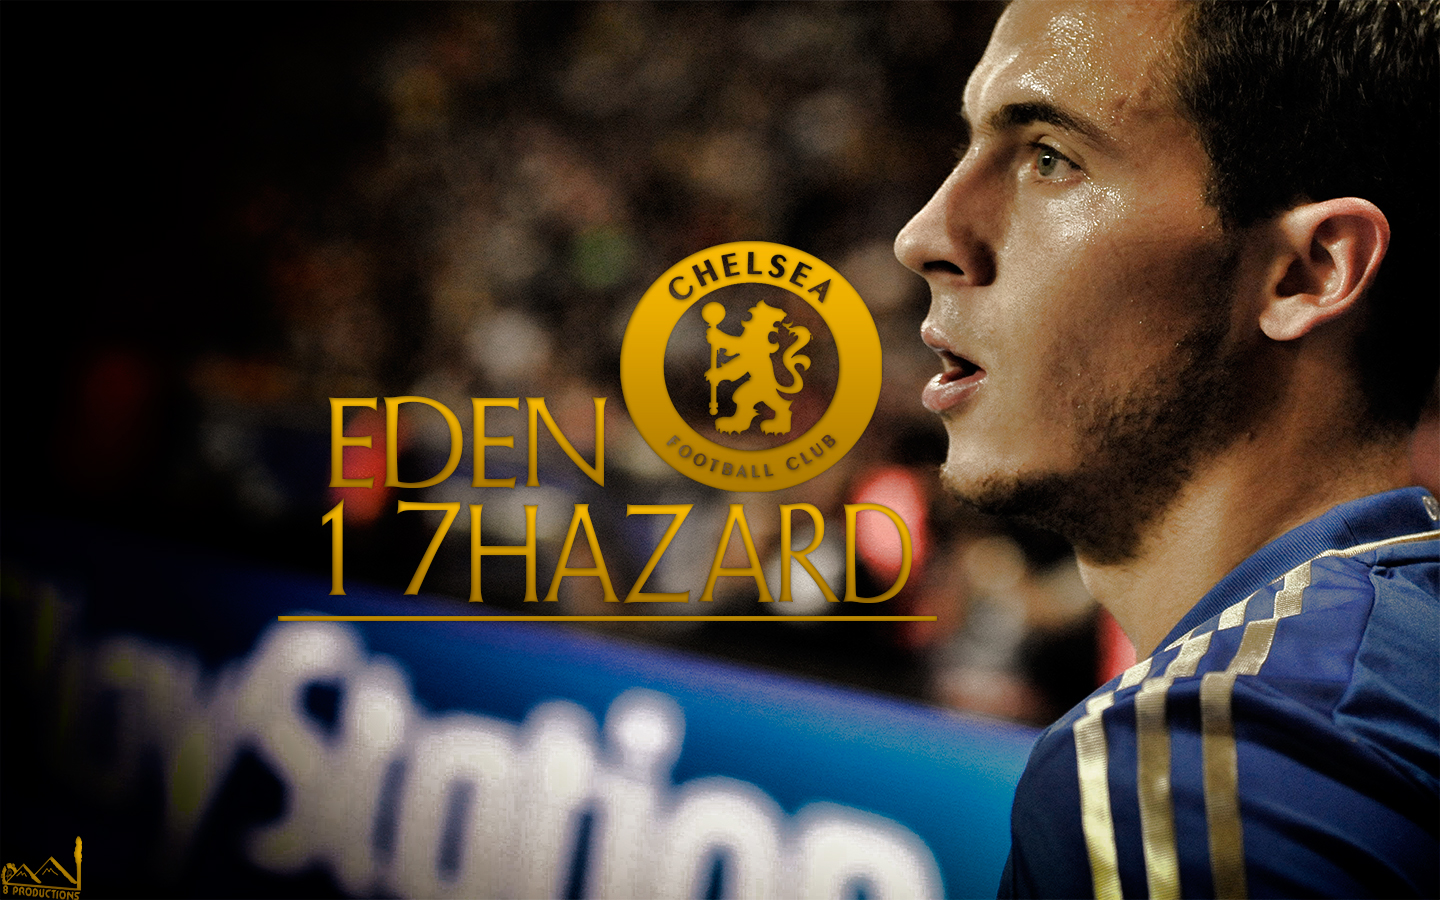 Eden hazard wallpapers high resolution and quality download - Chelsea wallpaper 4k ...